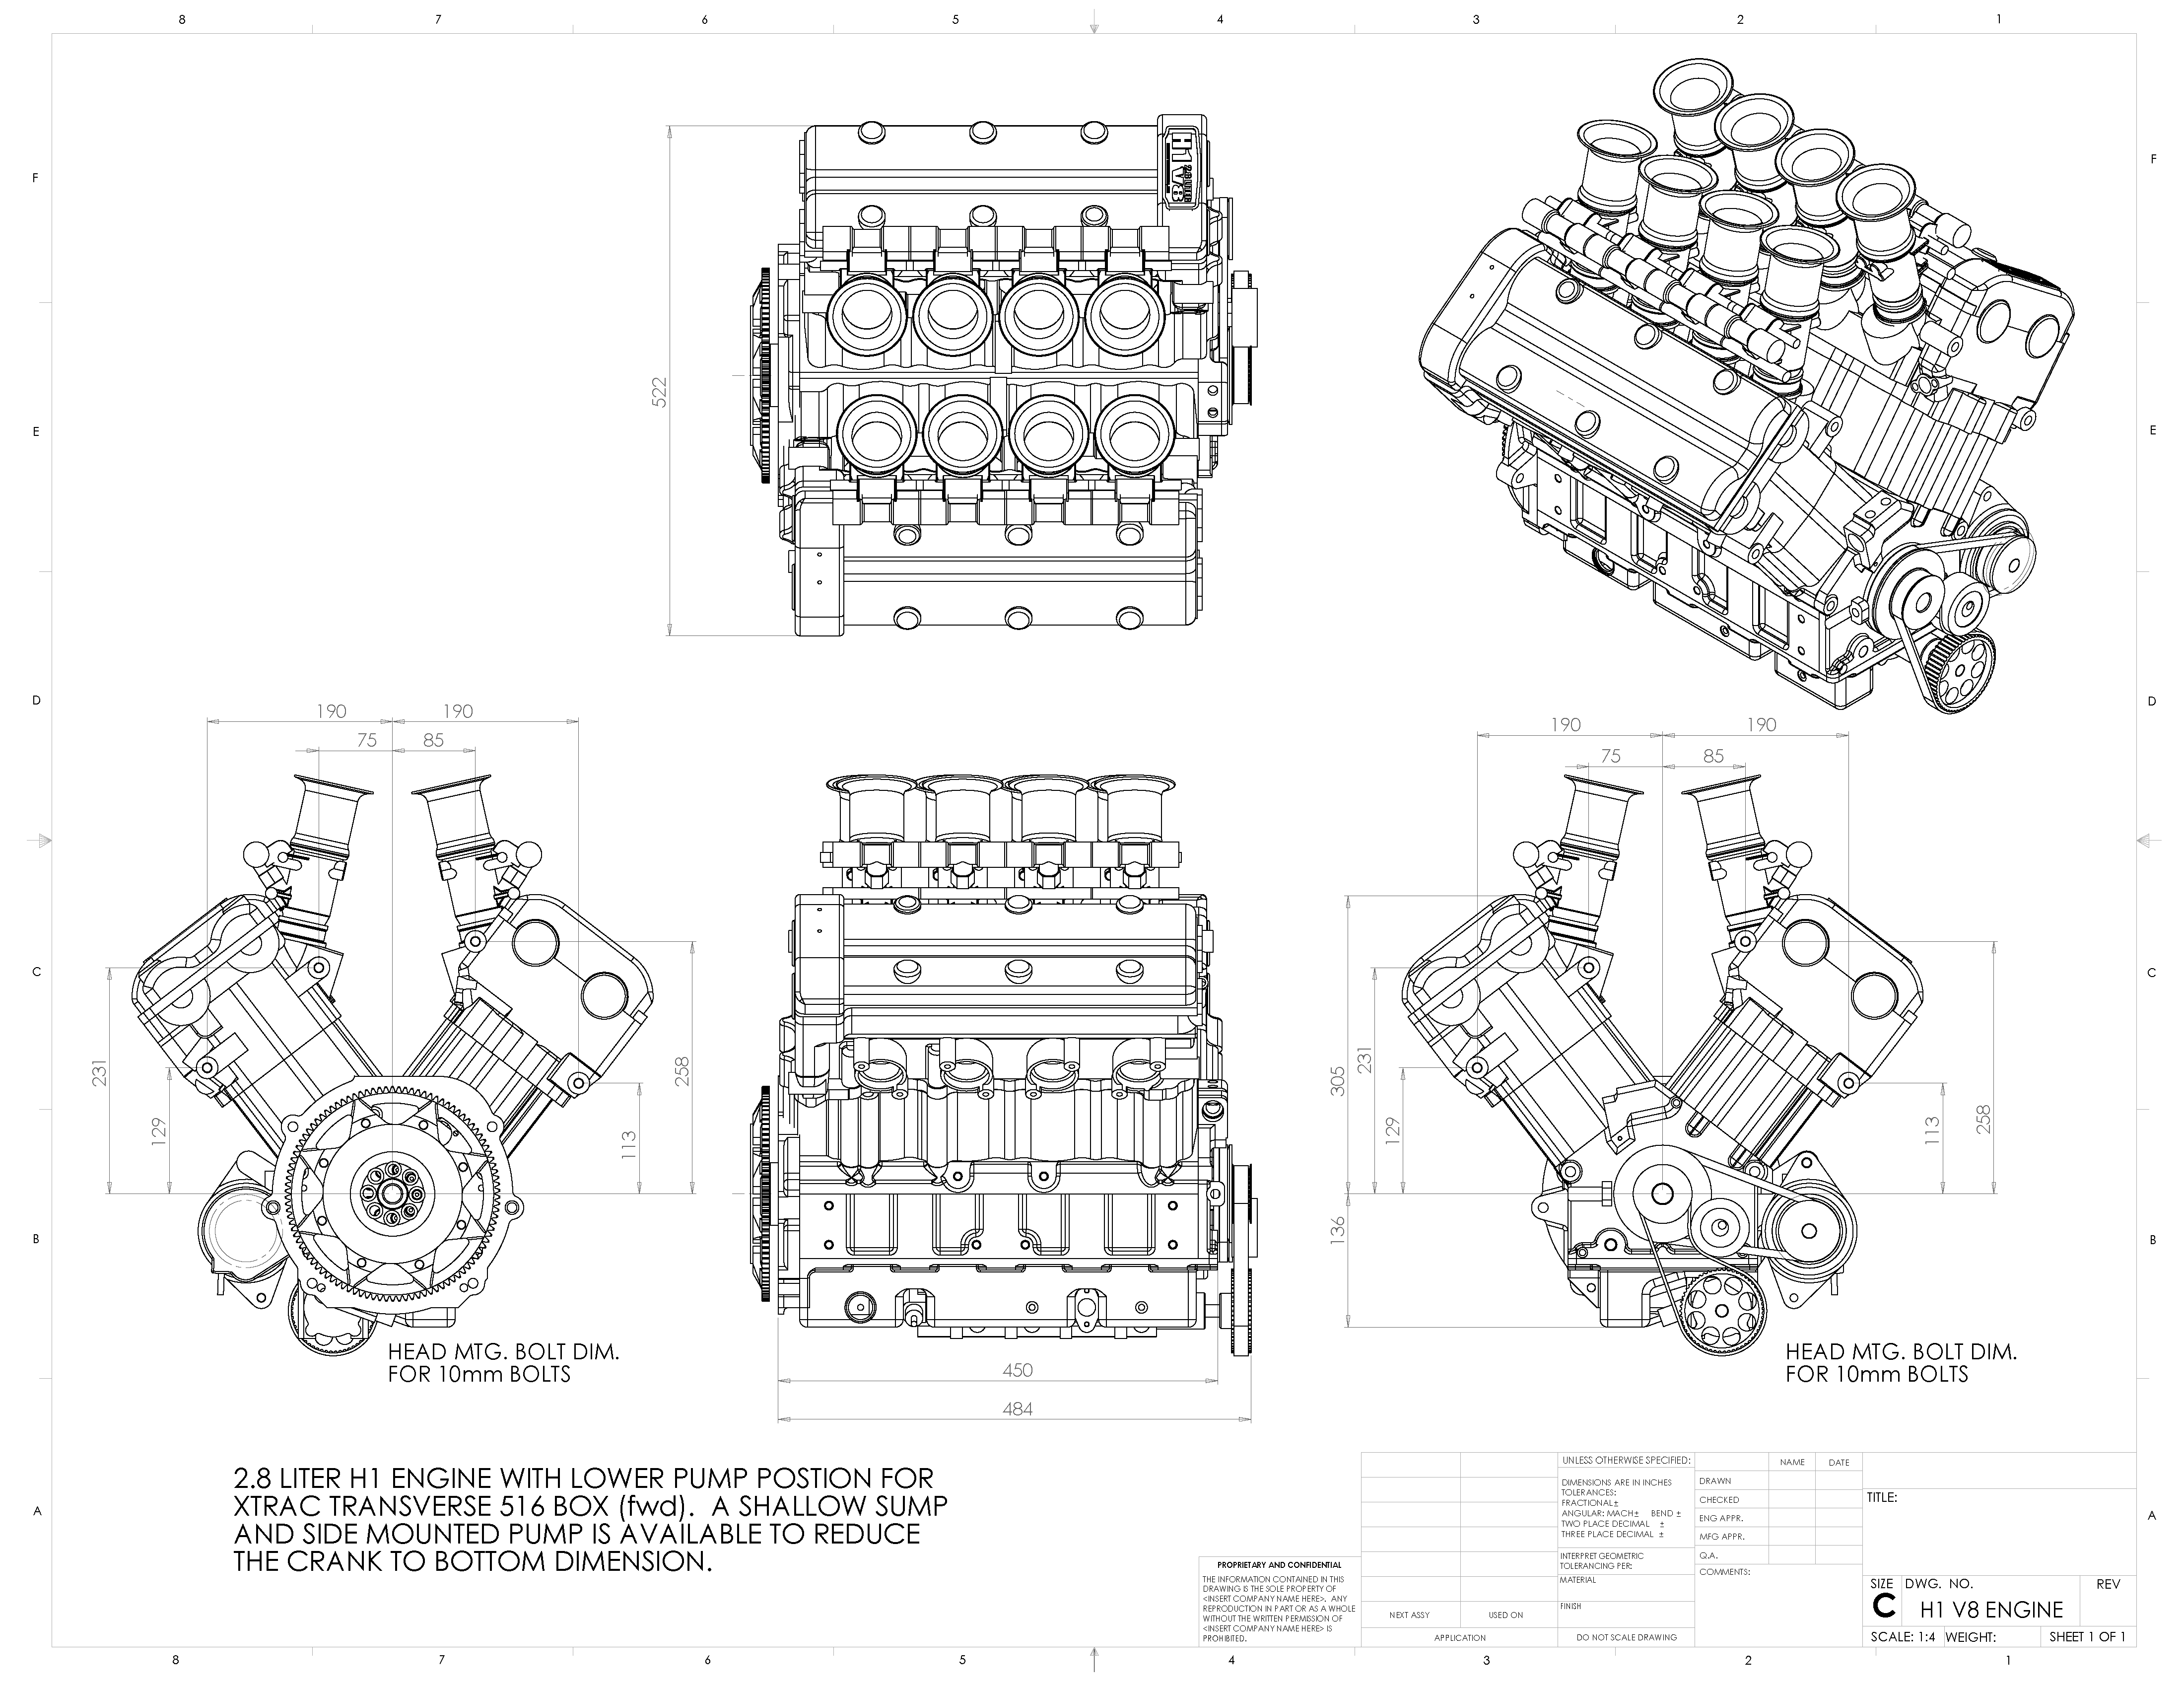 dim engine diagram simple circuit diagram worksheet \u2022 v8 engine clip art dim v6 engine diagram circuit diagram symbols u2022 rh stripgore com basic engine diagram 4 cylinder